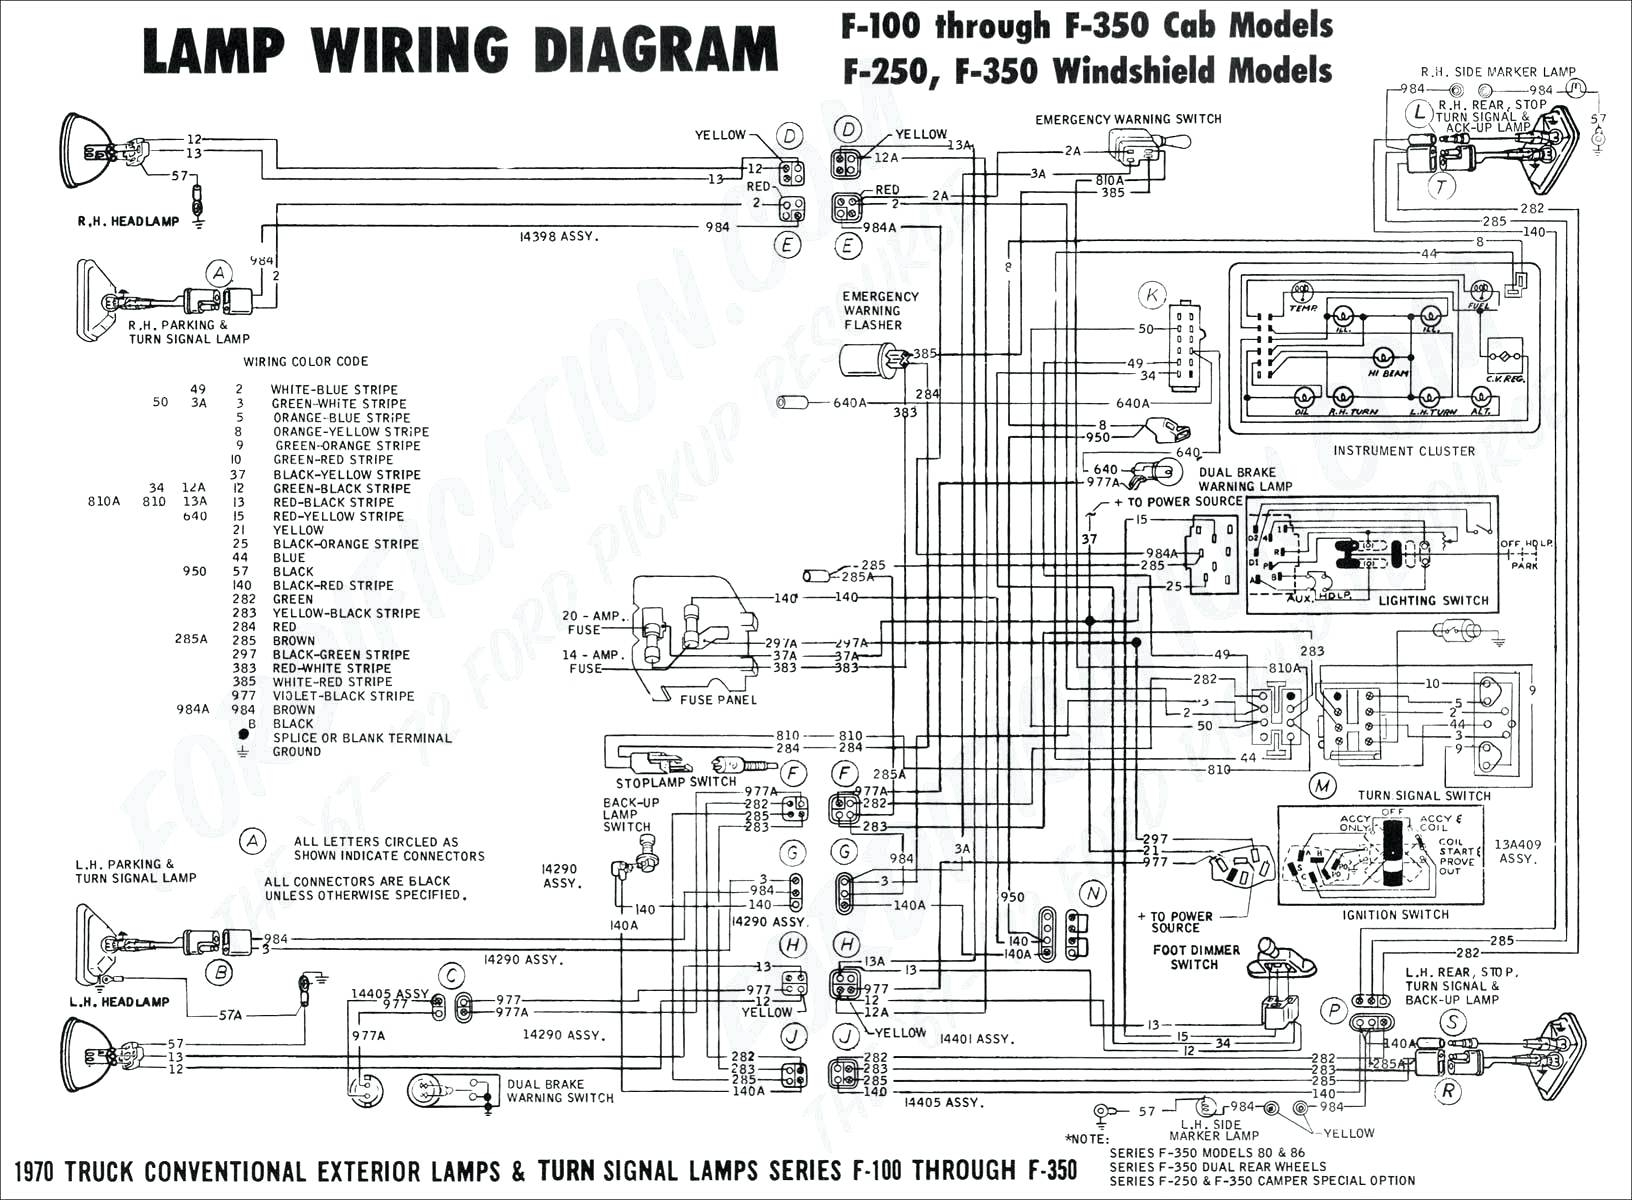 2000 Ford F250 4x4 Wiring Diagram